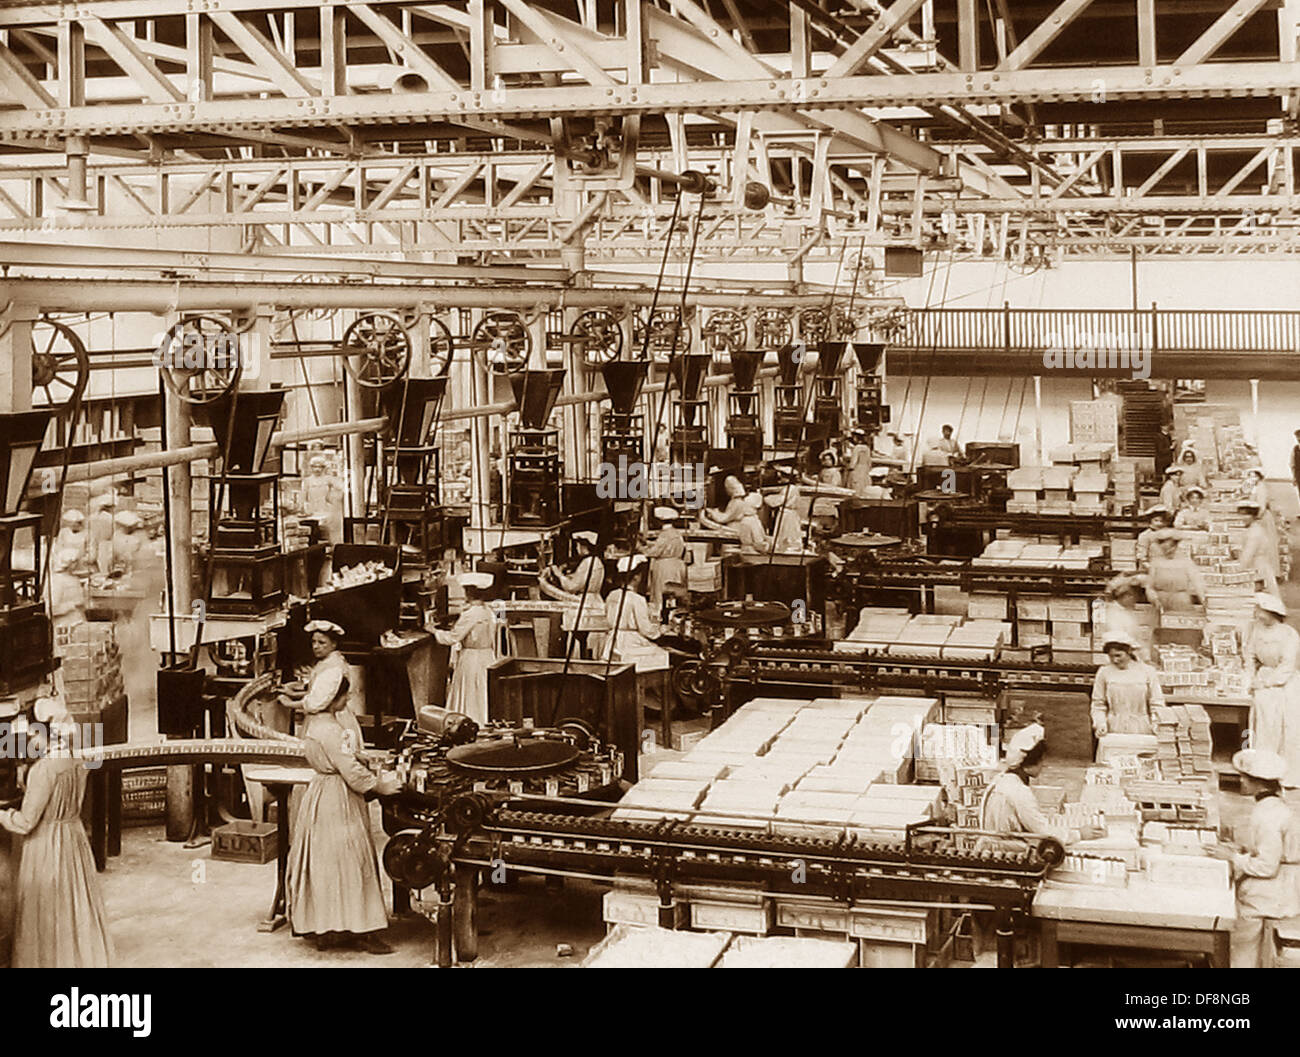 Port Sunlight - automatic packing - early 1900s - Stock Image